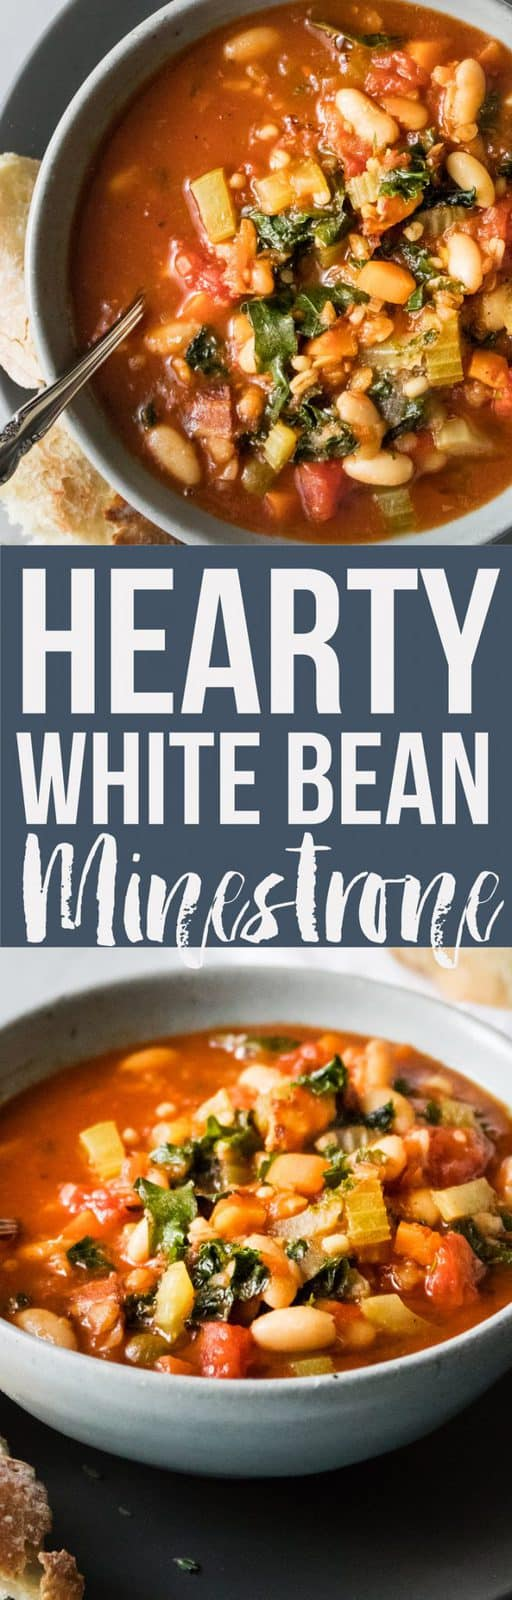 An original Italian minestrone stuffed with vegetables, beans and noodles. This soup is the perfect warmer. It's so healthy and easy to make it will be your new favorite in just one bite! #soup #fallrecipes #easyrecipe #healthydinner #healthyrecipe